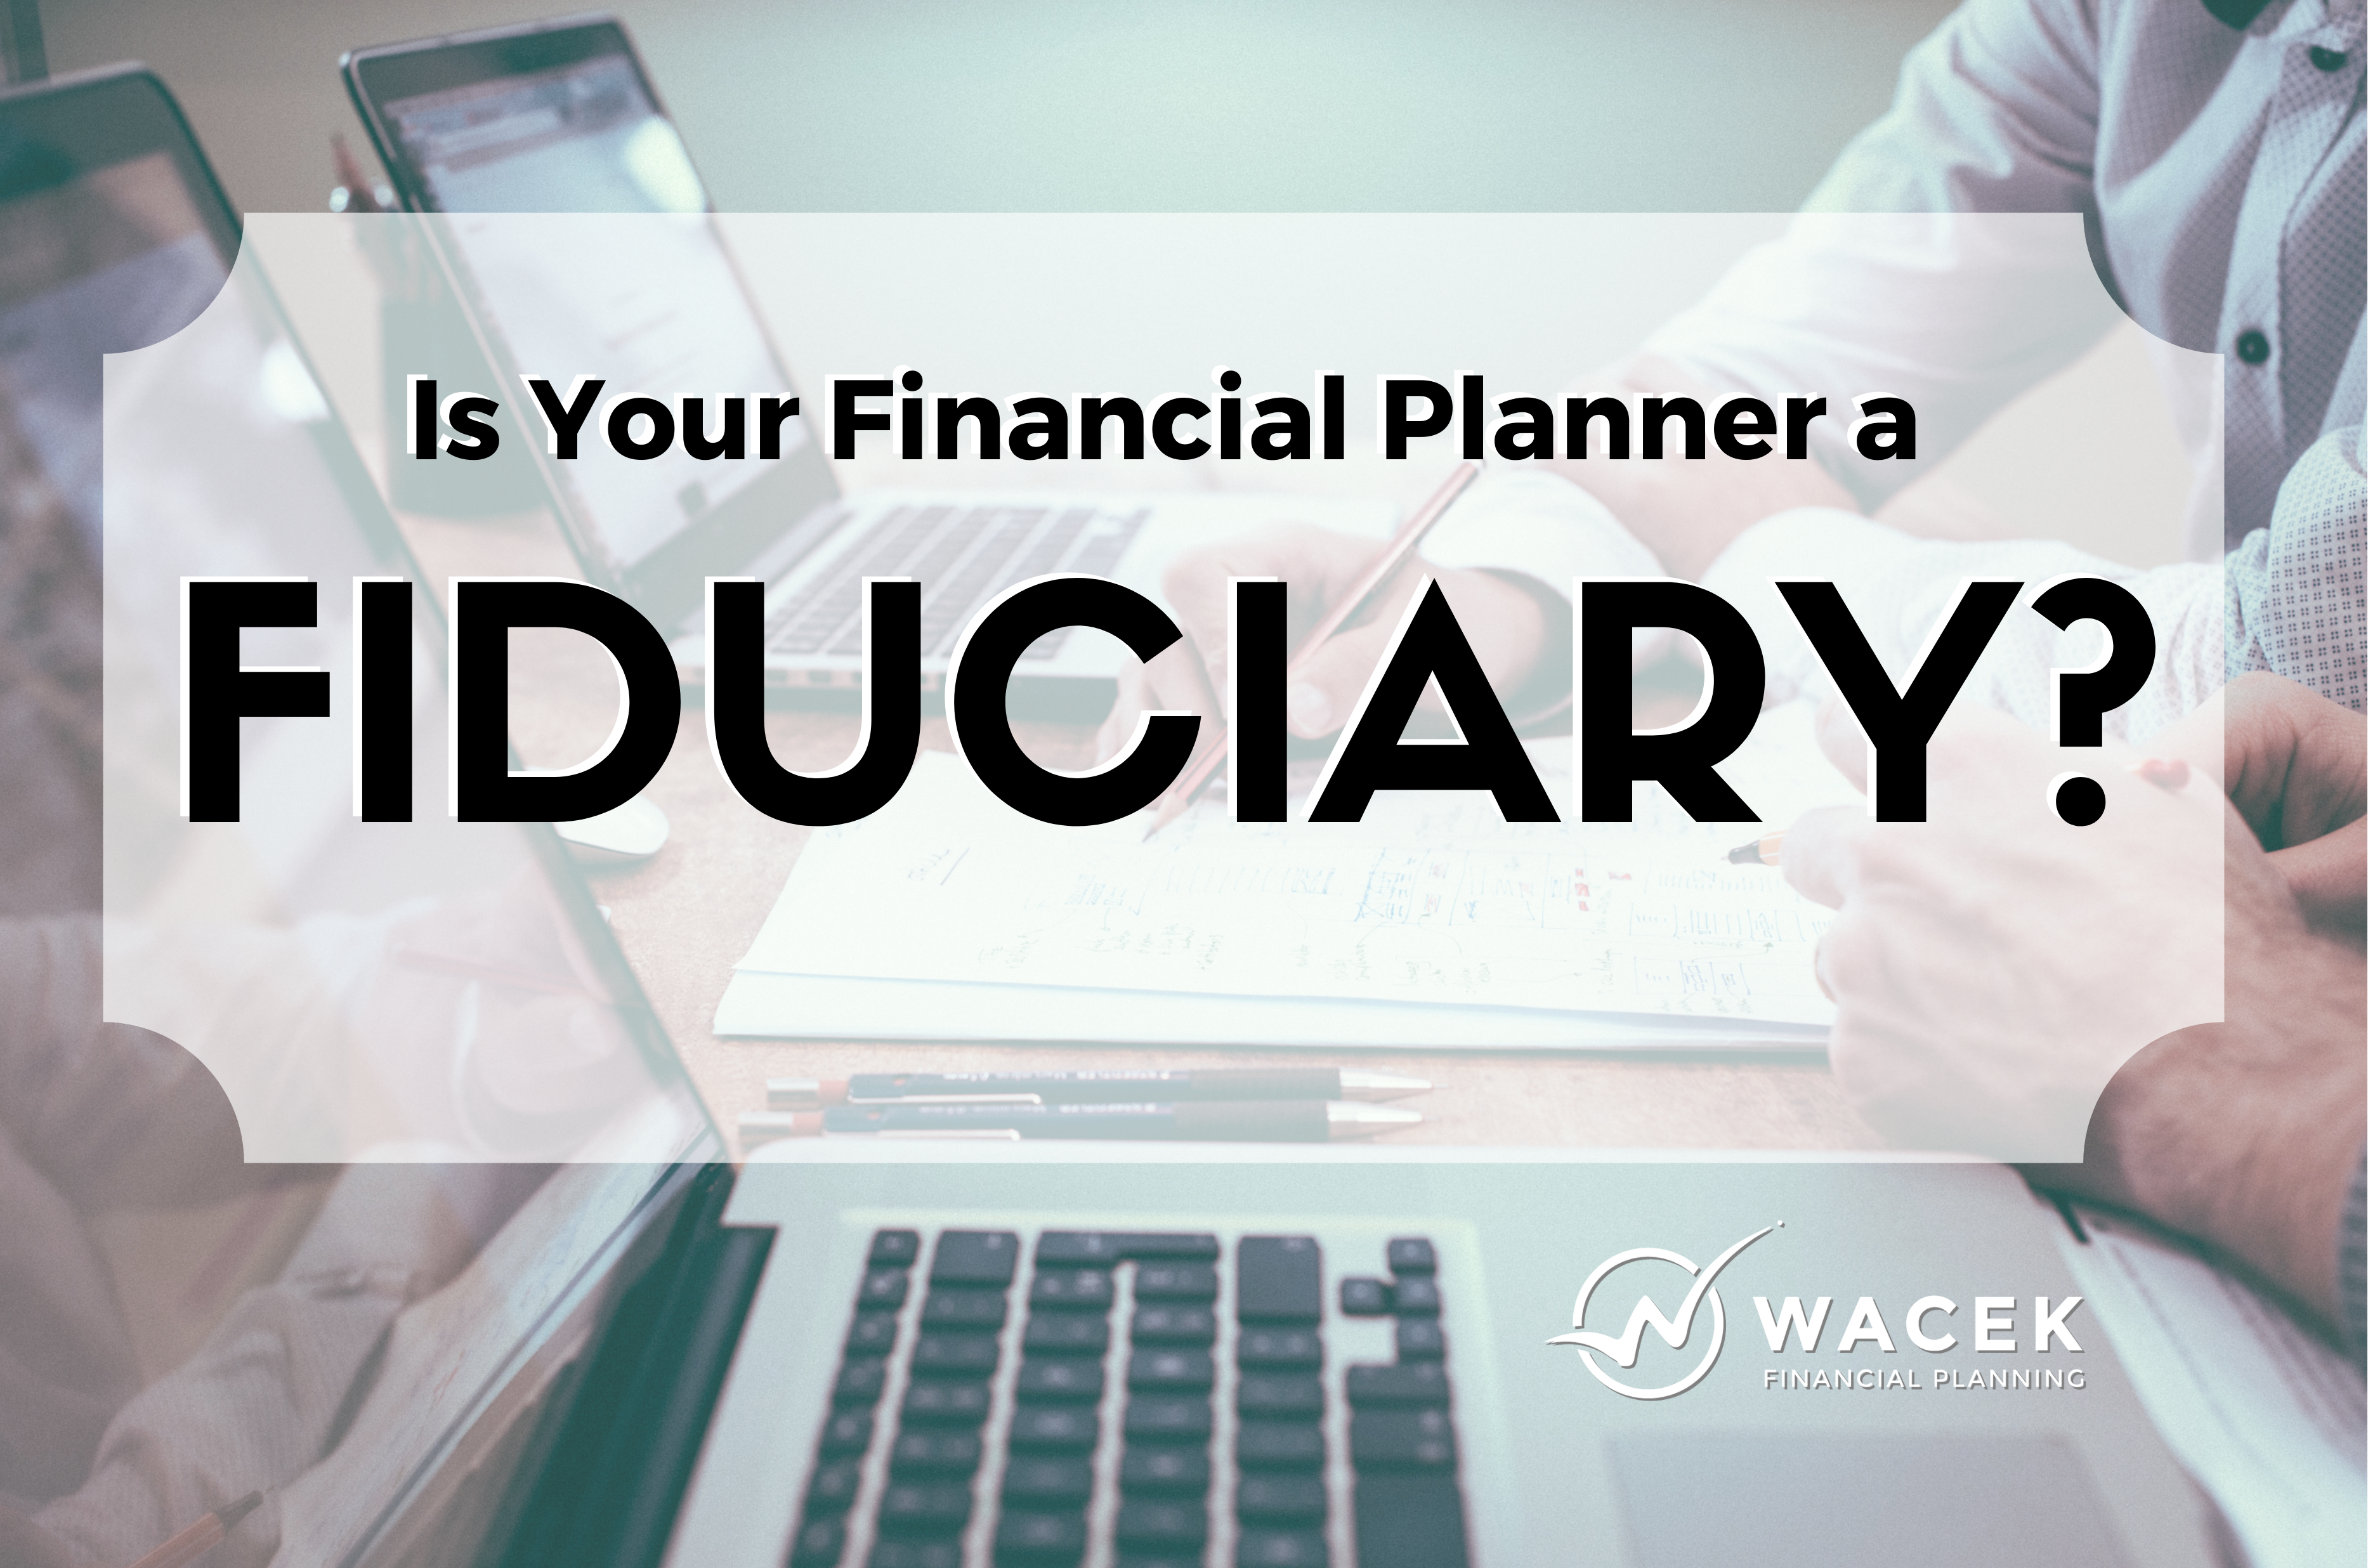 Is Your Financial Planner a Fiduciary? Thumbnail